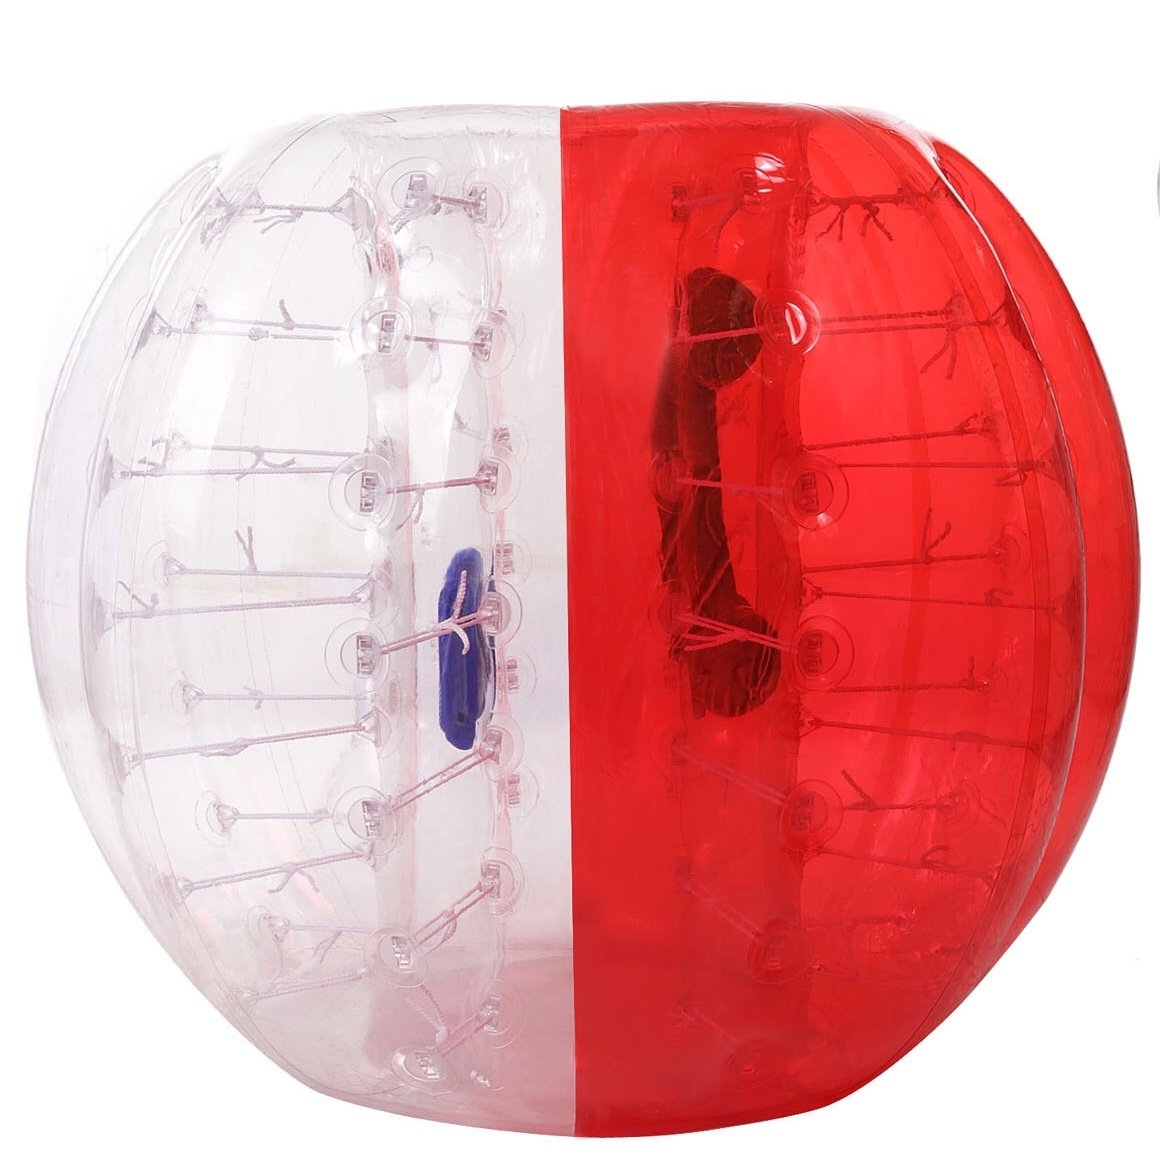 Oanon Inflatable Bumper Ball 1.2M 4FT/1.5M 5FT Diameter Bubble Soccer Ball Blow Up Toy, Inflatable Bumper Bubble Balls for Childs,teens,adults (White/Red 1.5M)